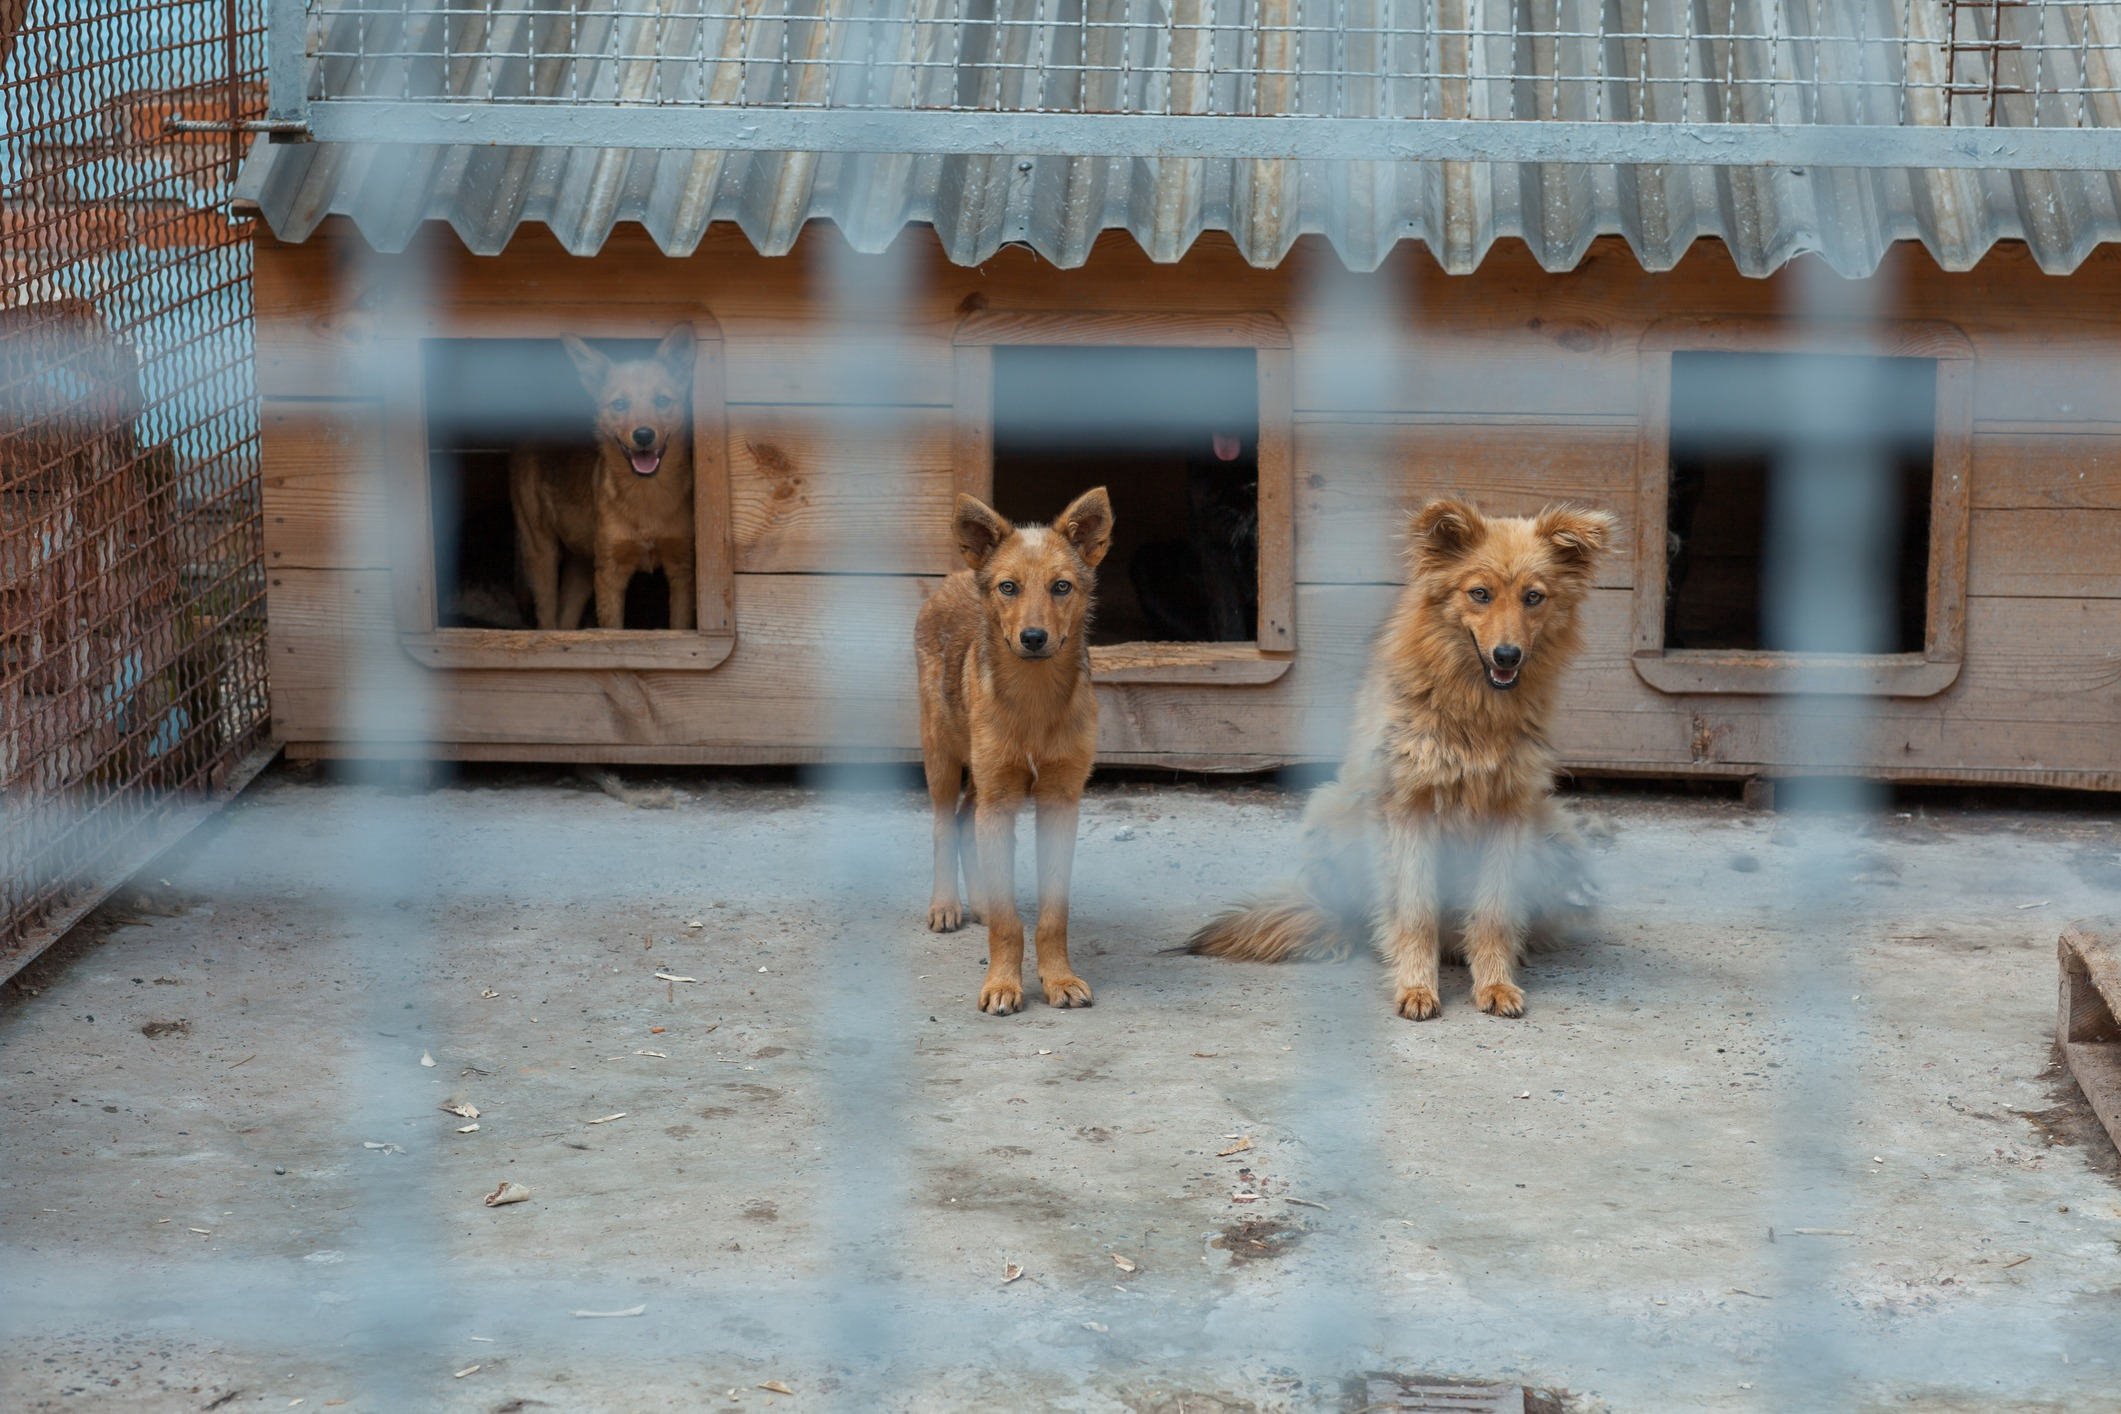 Dogs in cage waiting to be rescued